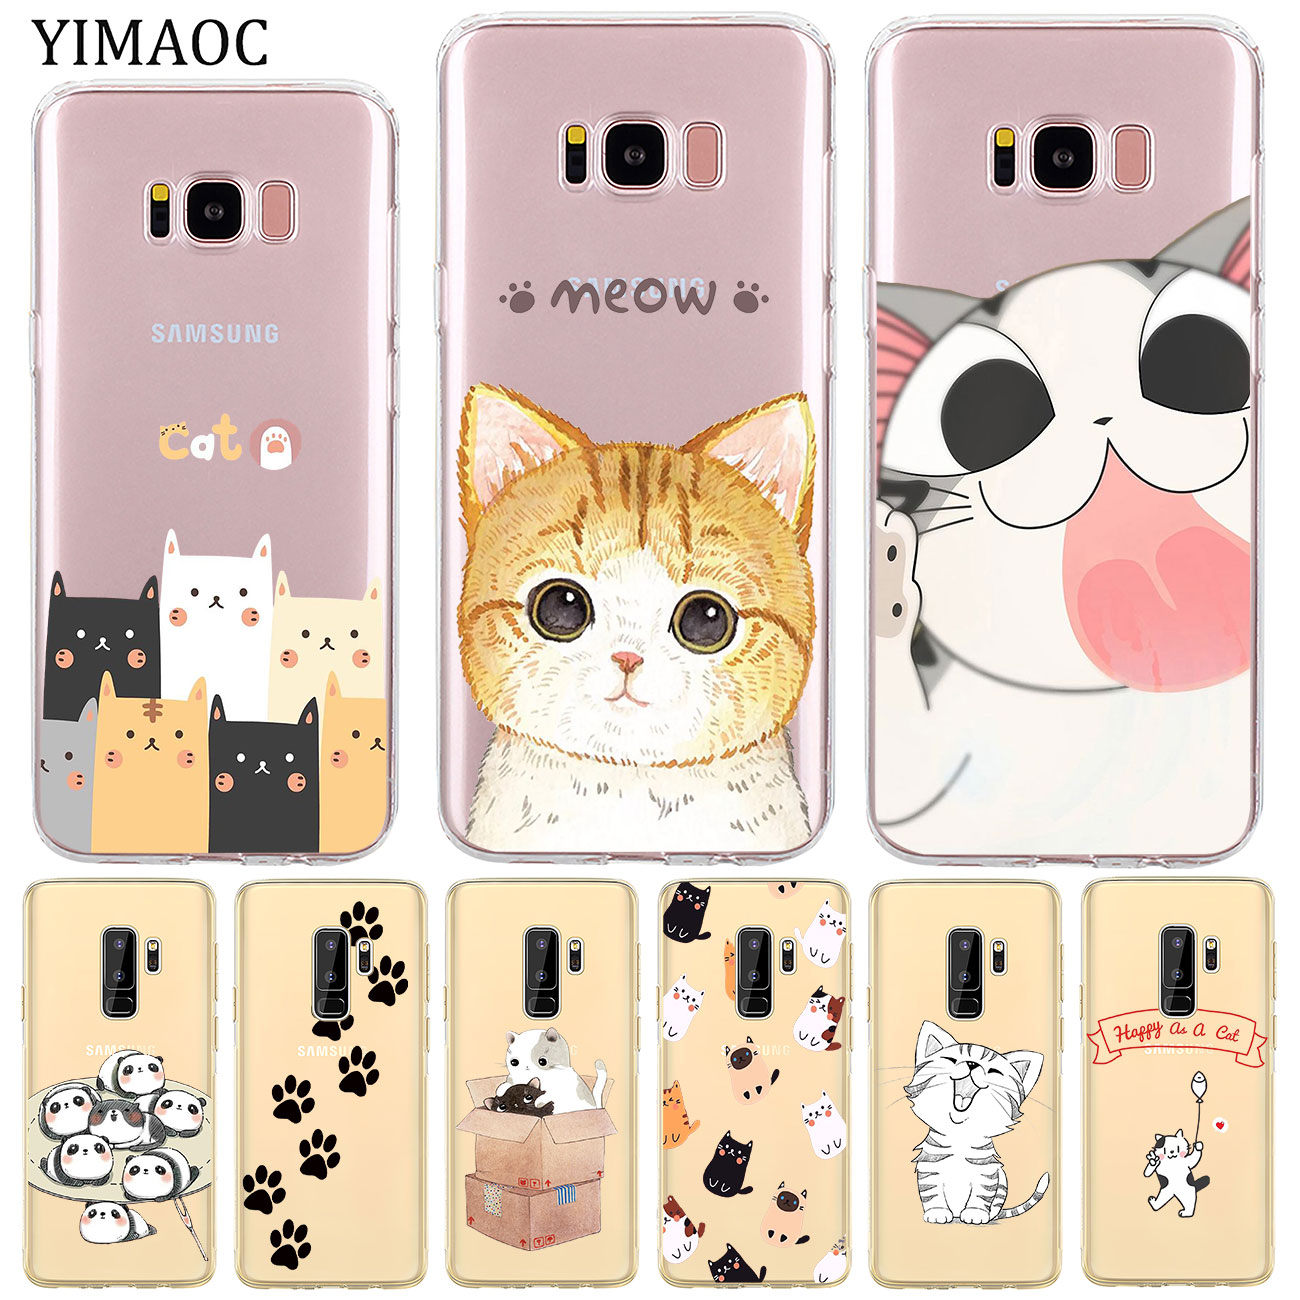 YIMAOC Cartoon Cat Meow Soft Silicone Phone Shell Case for Samsung Galaxy S10e S10 S9 S8 Note 10 Plu